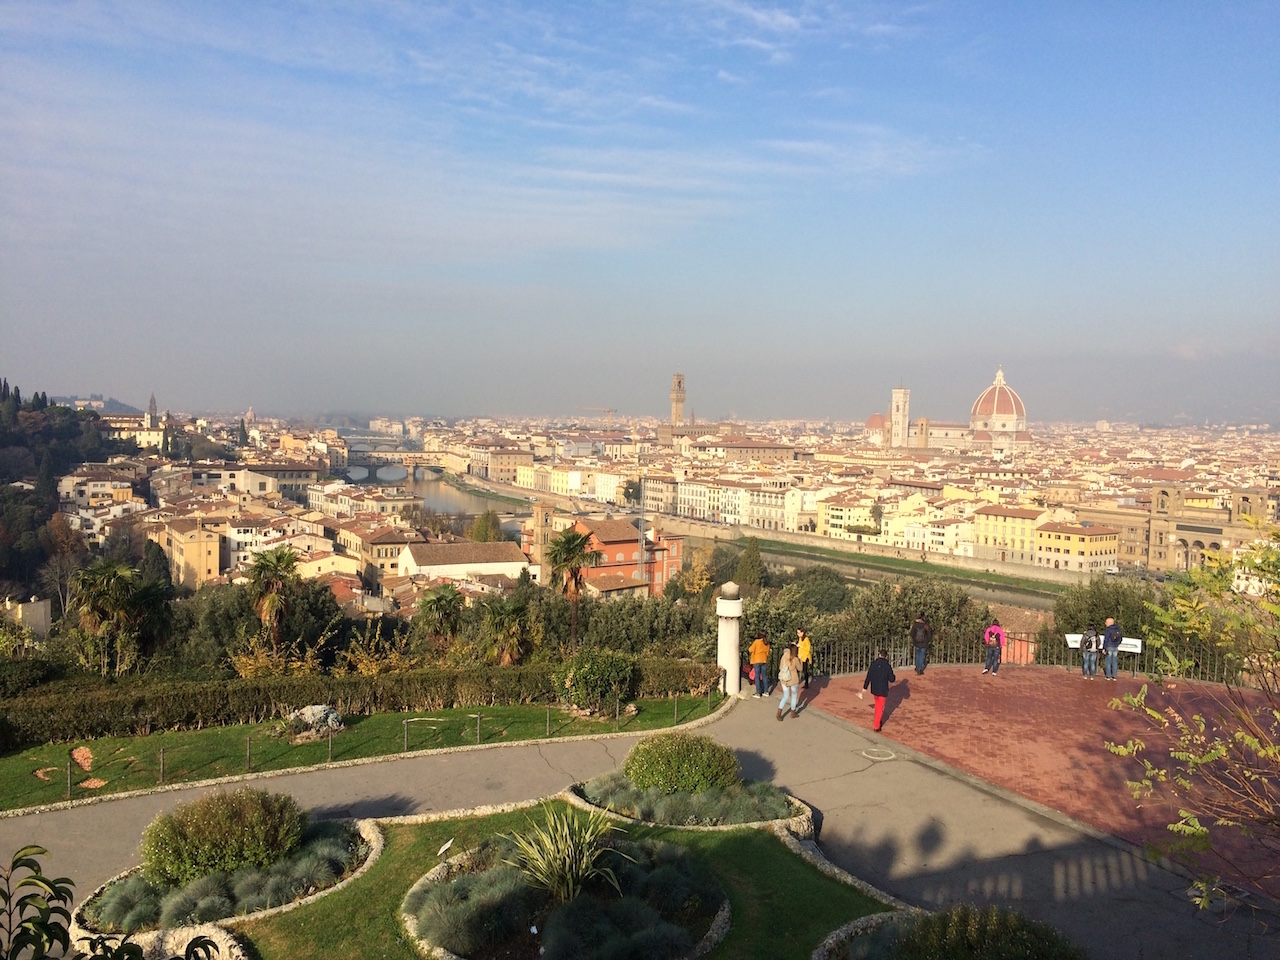 Rooftop Cafes Le Terrazze Panoramiche Per Ammirare Firenze